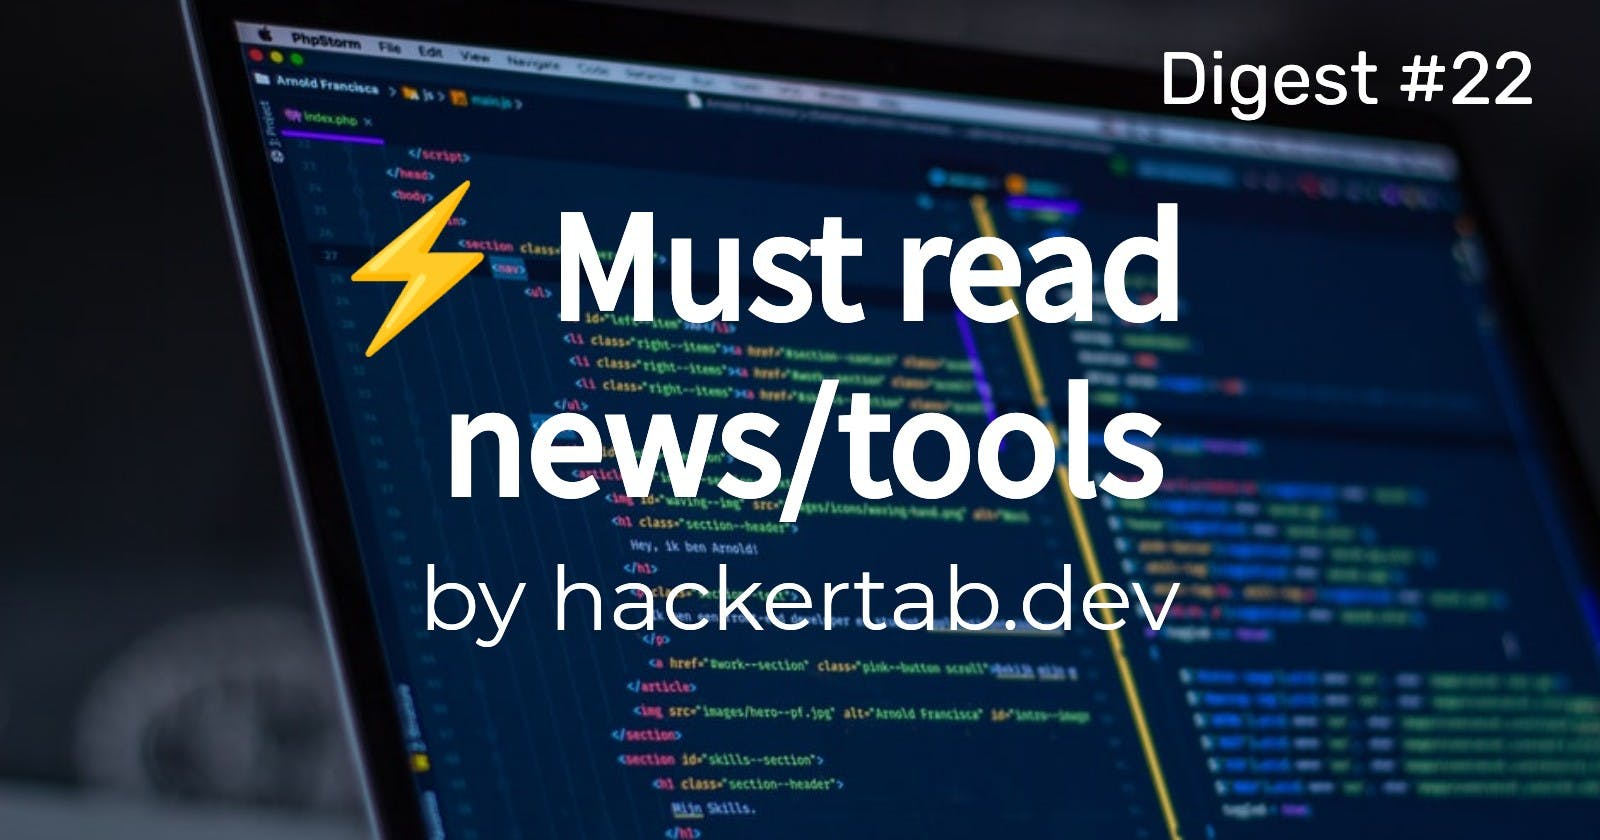 ⚡ Must read Tech news/tools of the day - Digest #22